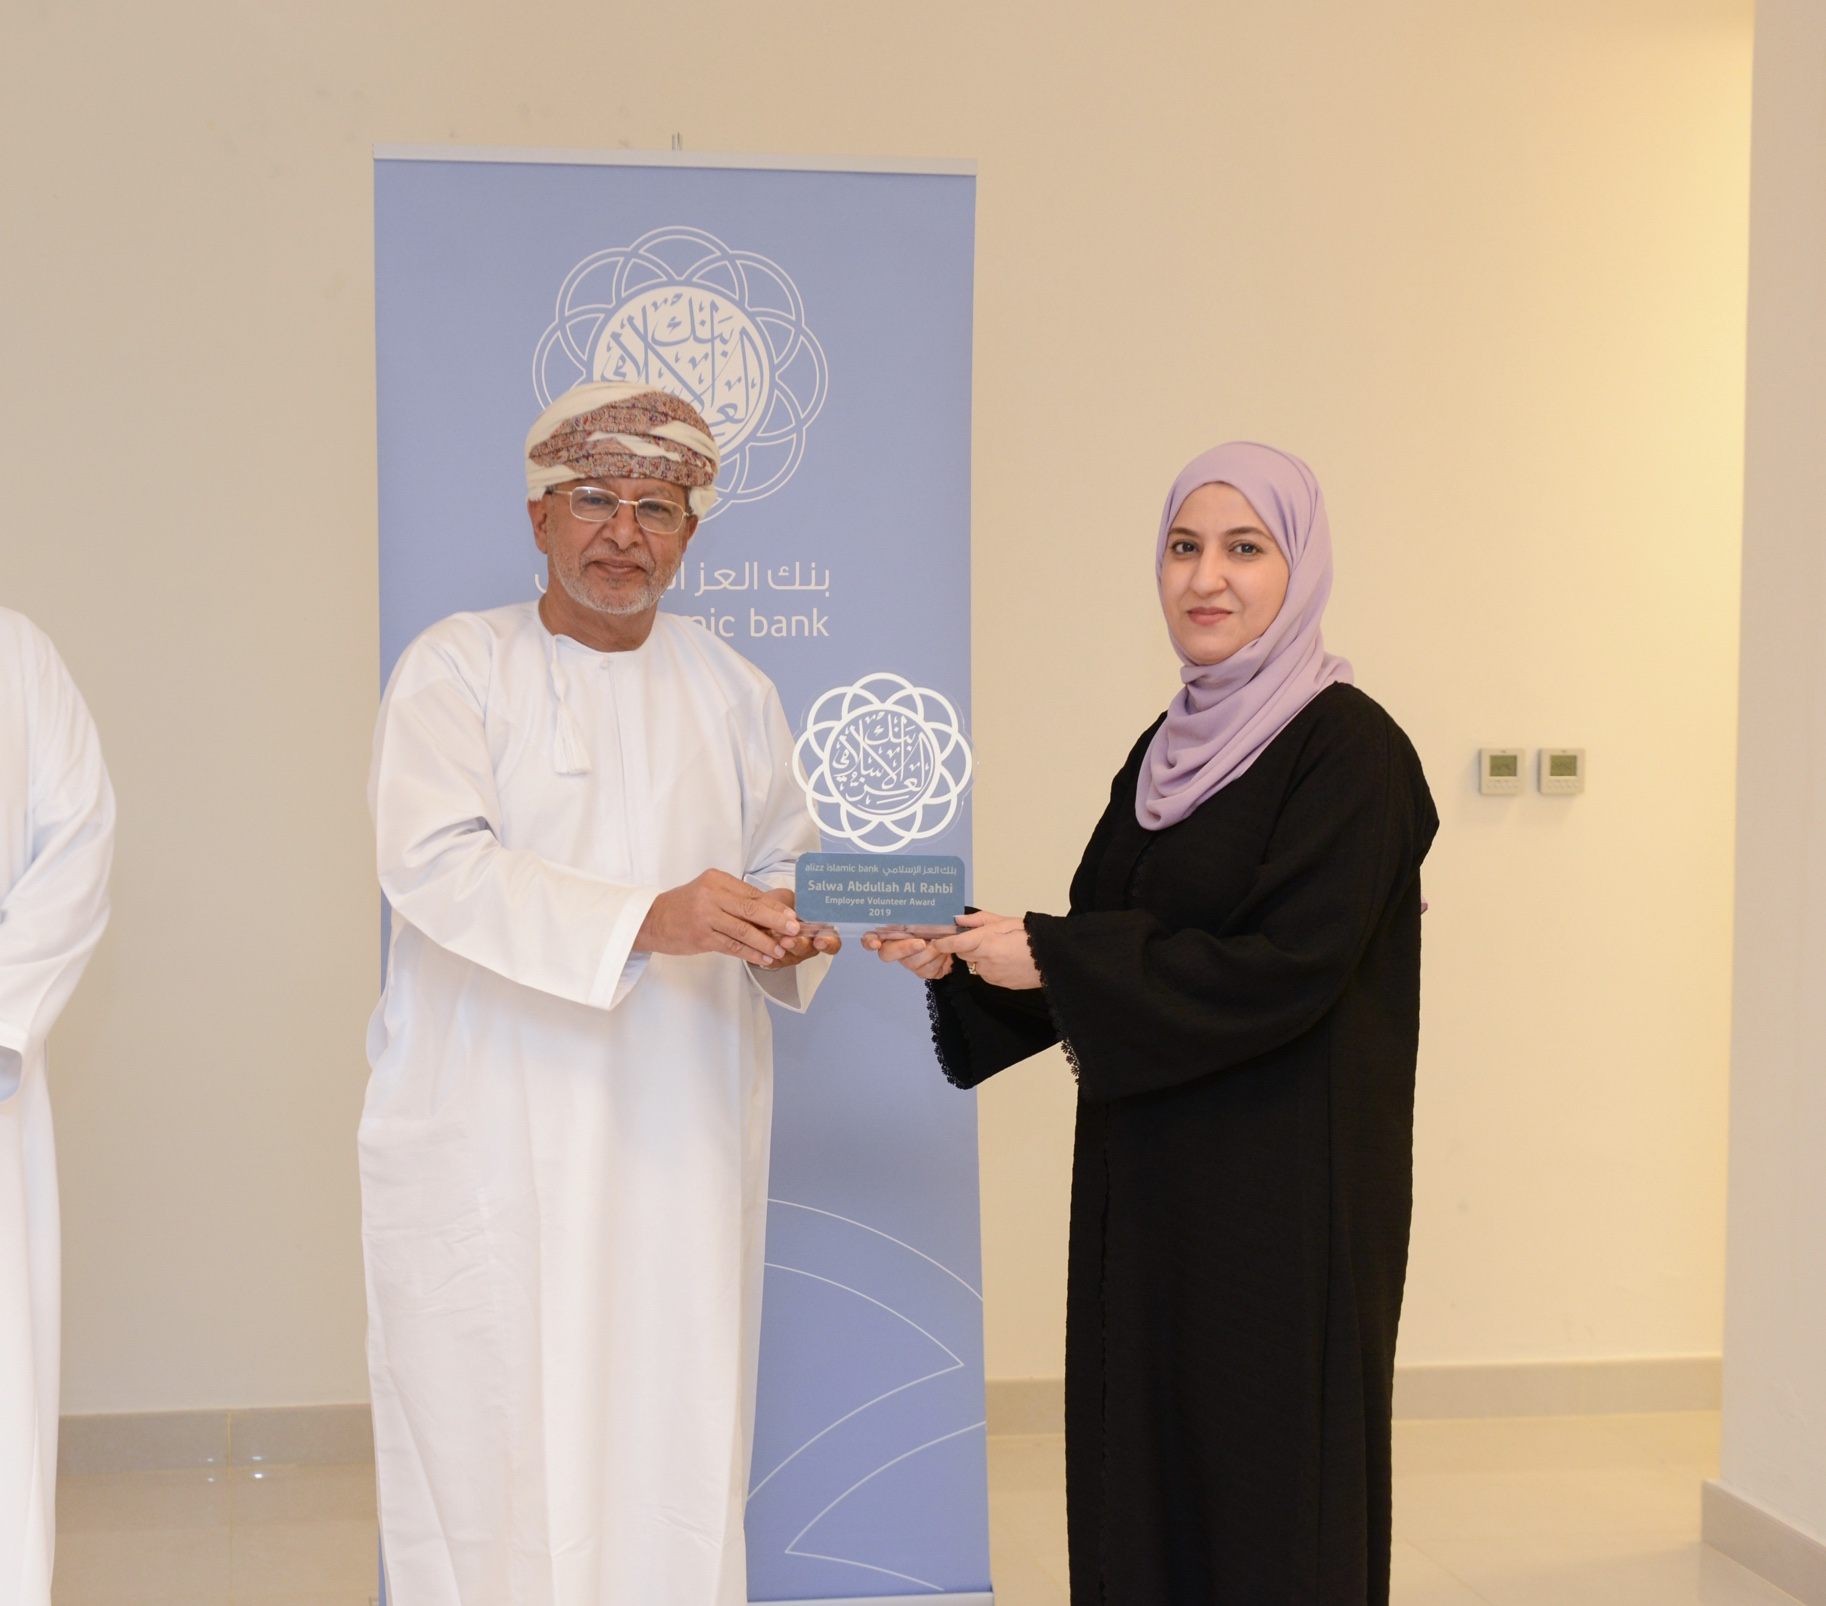 ALIZZ ISLAMIC BANK LAUNCHES VOLUNTEER RECOGNITION PROGRAM